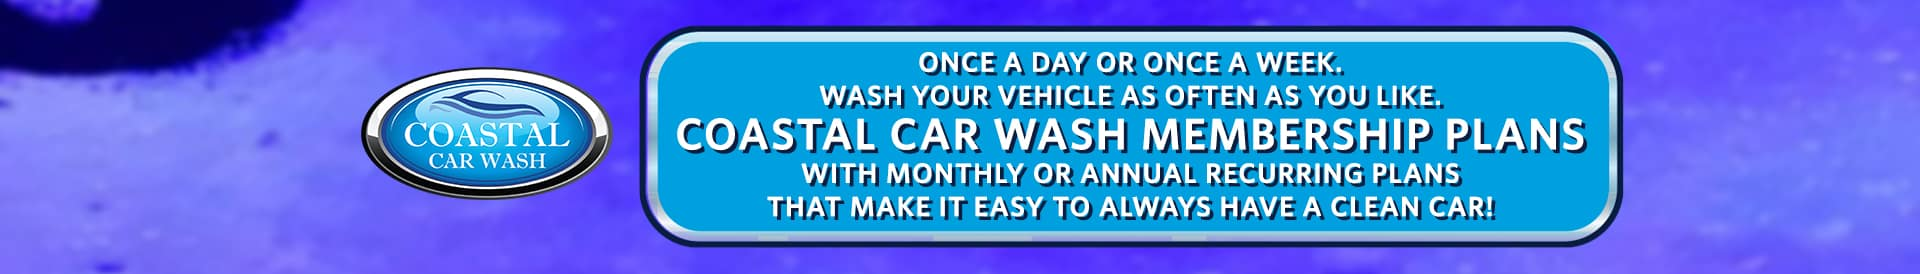 Learn about the Coastal Car Wash Membership plans.